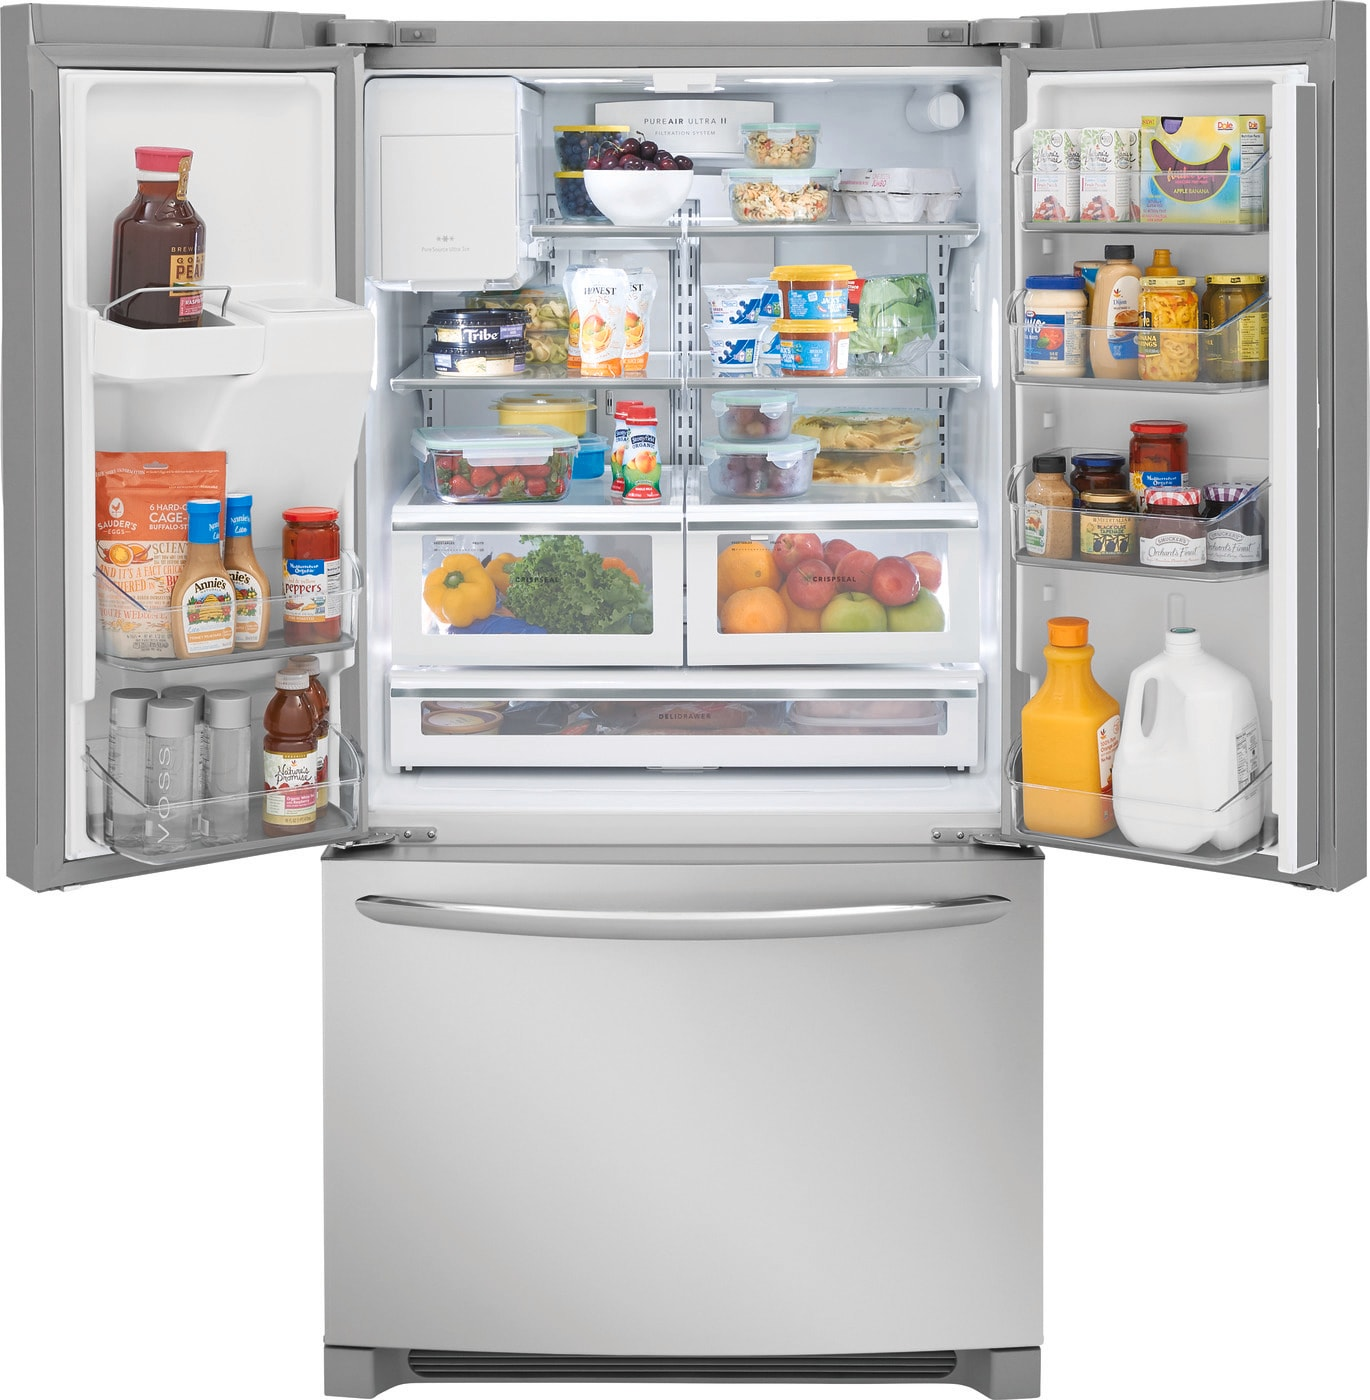 26.8 Cu. Ft. French Door Refrigerator Stainless Steel FGHB2868TF